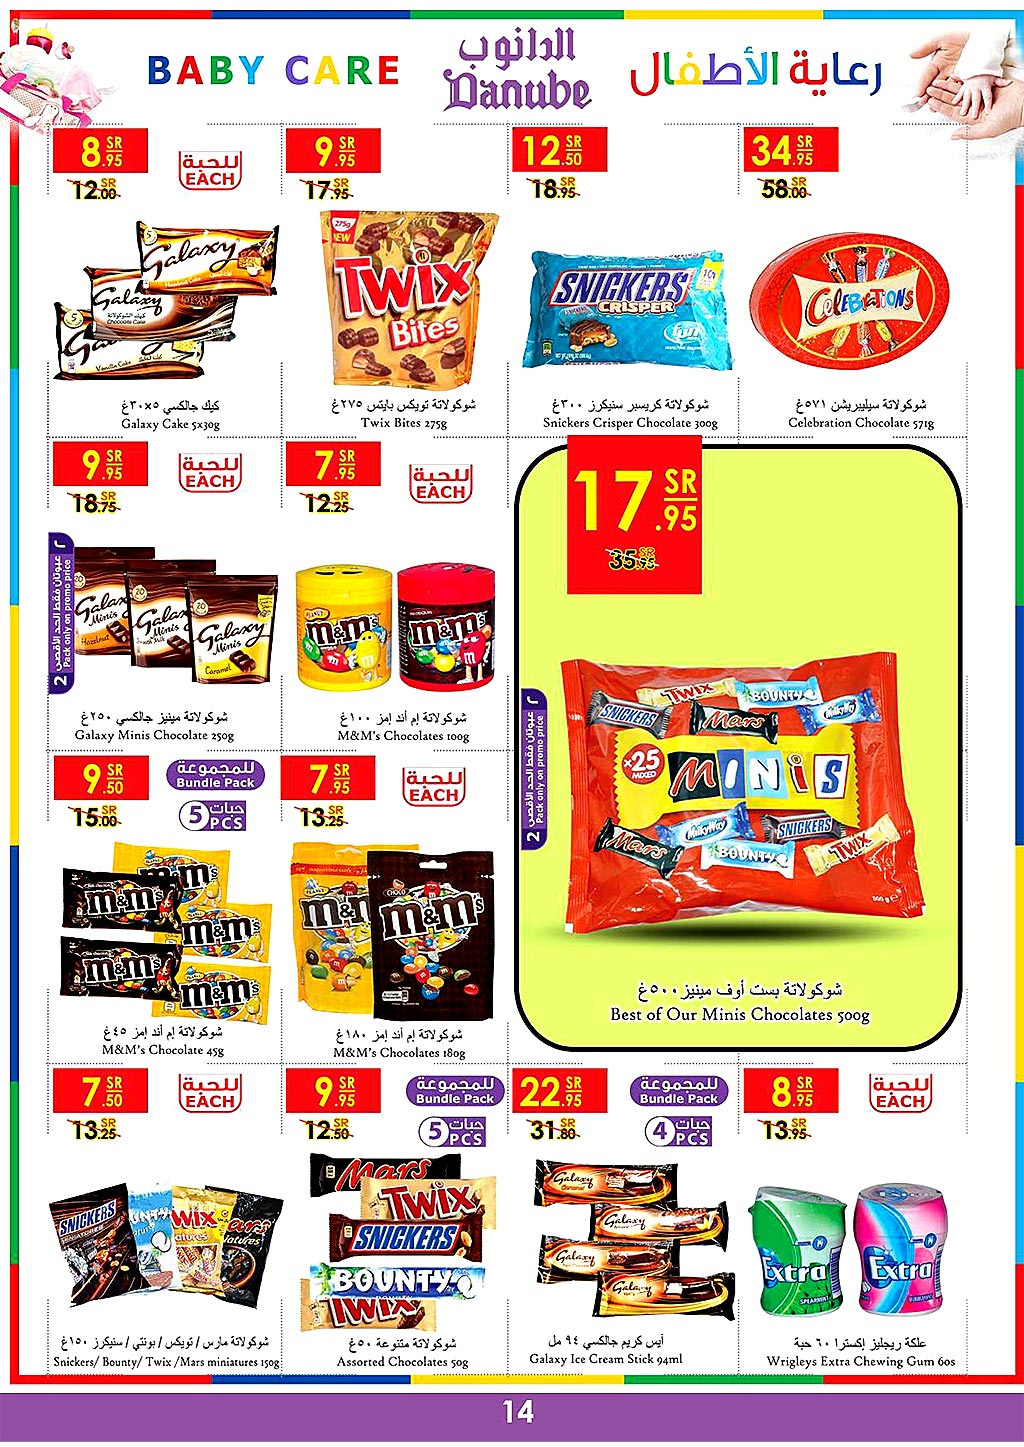 danube offers from 24july to 30july 2019 page number 13 عروض الدانوب من 24 يوليو حتى 30 يوليو 2019 صفحة رقم 13